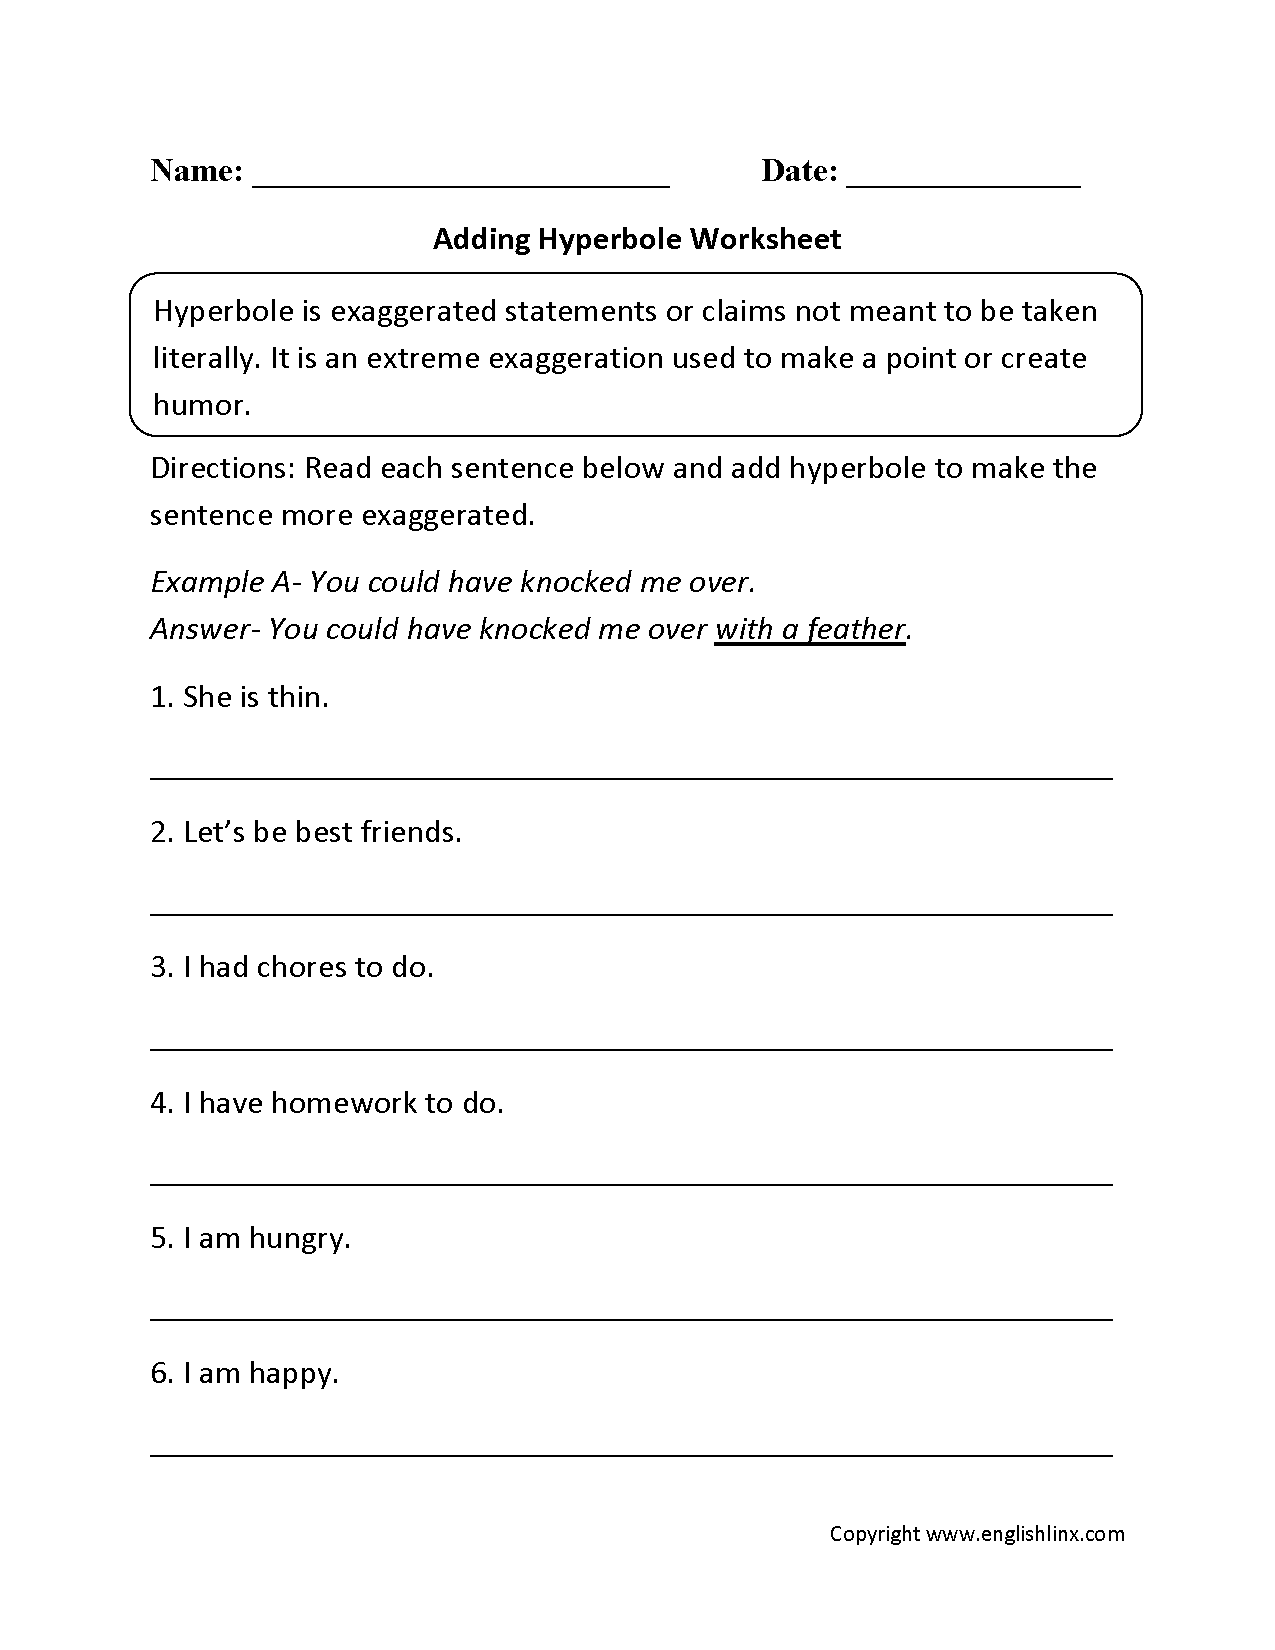 worksheet Worksheets For 5 Grade figurative language worksheets hyperbole worksheets